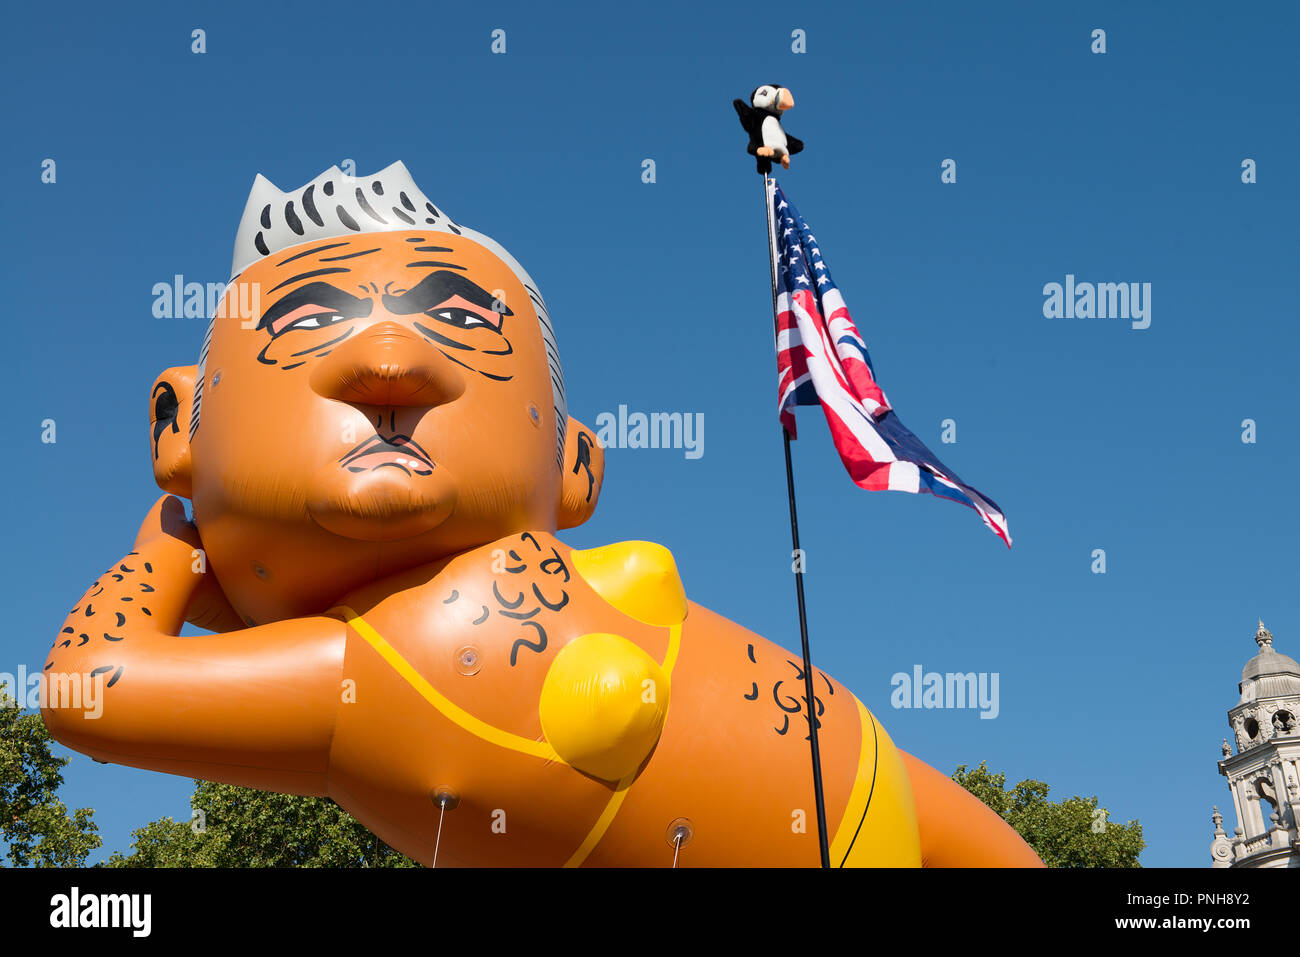 Campaign organised by Yanny Bruere to oust Sadiq Khan as Mayor of London, by using a giant bikini-clad balloon of Mr.Khan, to make London safer again. - Stock Image